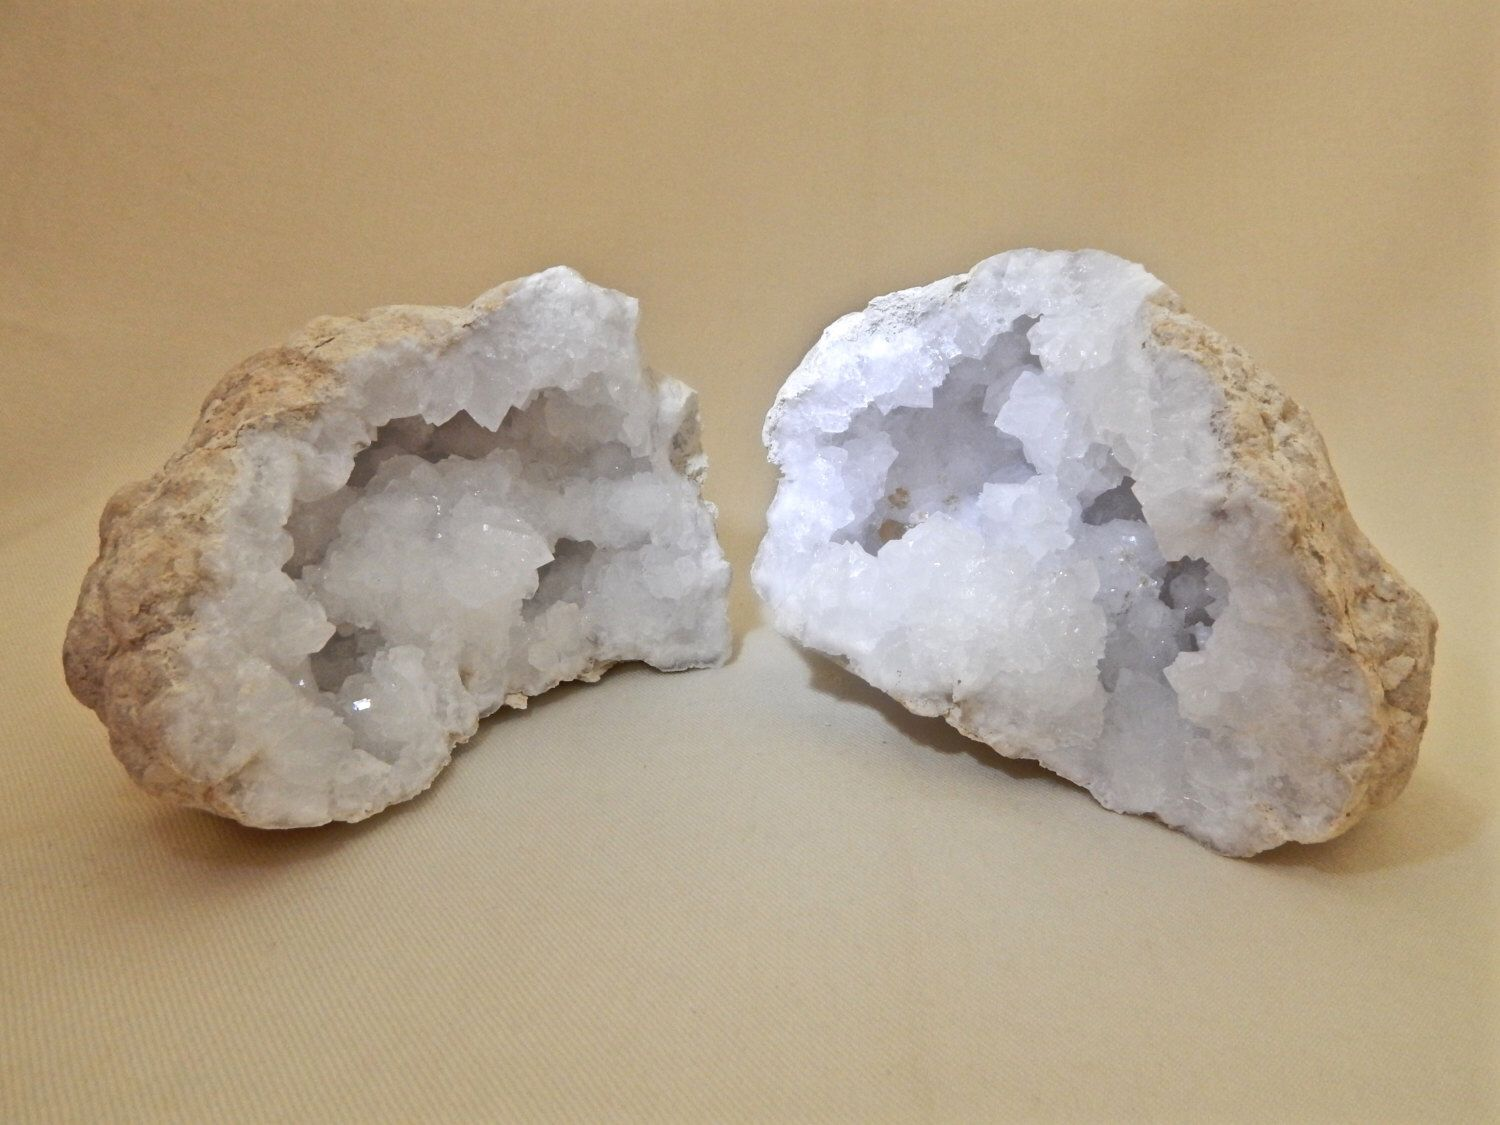 Natural Moroccan Quartz Crystal Geode Pair by NaturalArtWorld on Etsy https://www.etsy.com/listing/252836788/natural-moroccan-quartz-crystal-geode